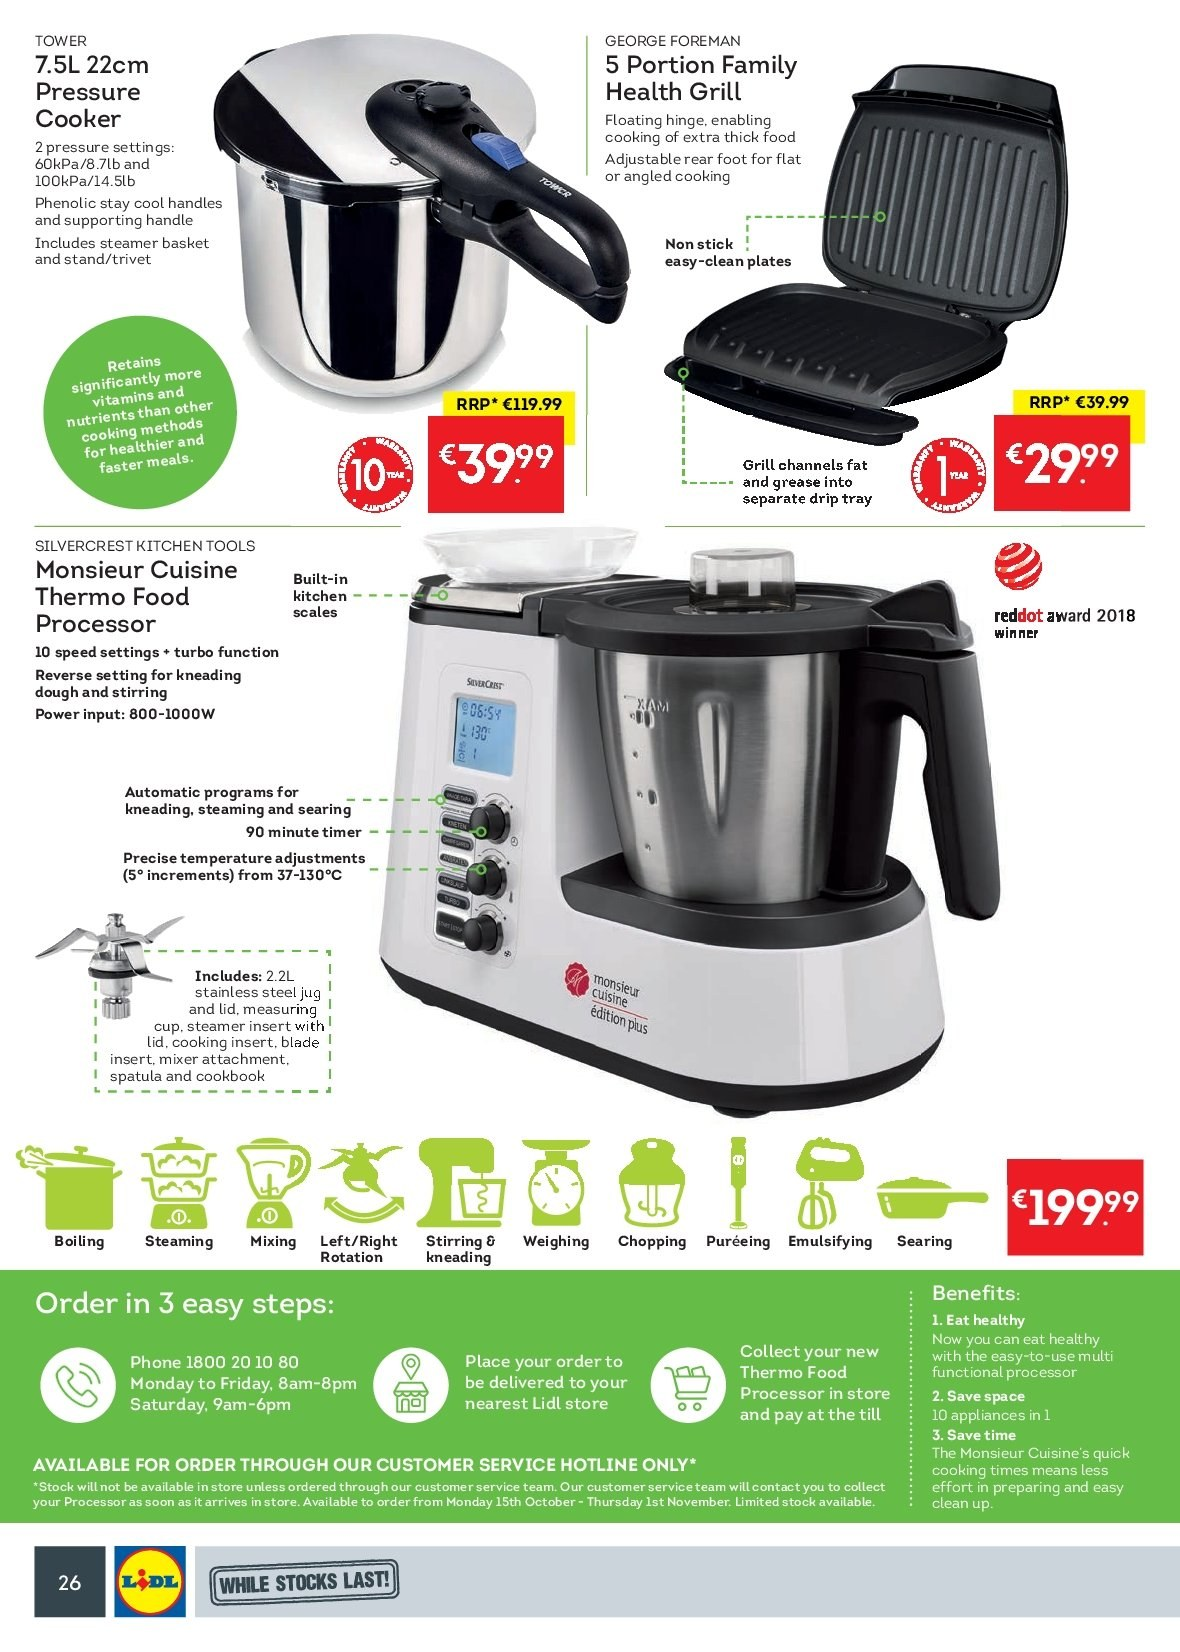 Lidl offer  - 15.10.2018 - 21.10.2018 - Sales products - SilverCrest, spatula, plate, pressure cooker, measuring cup, kitchen tools, mixer, food processor, food steamer, phone. Page 26.